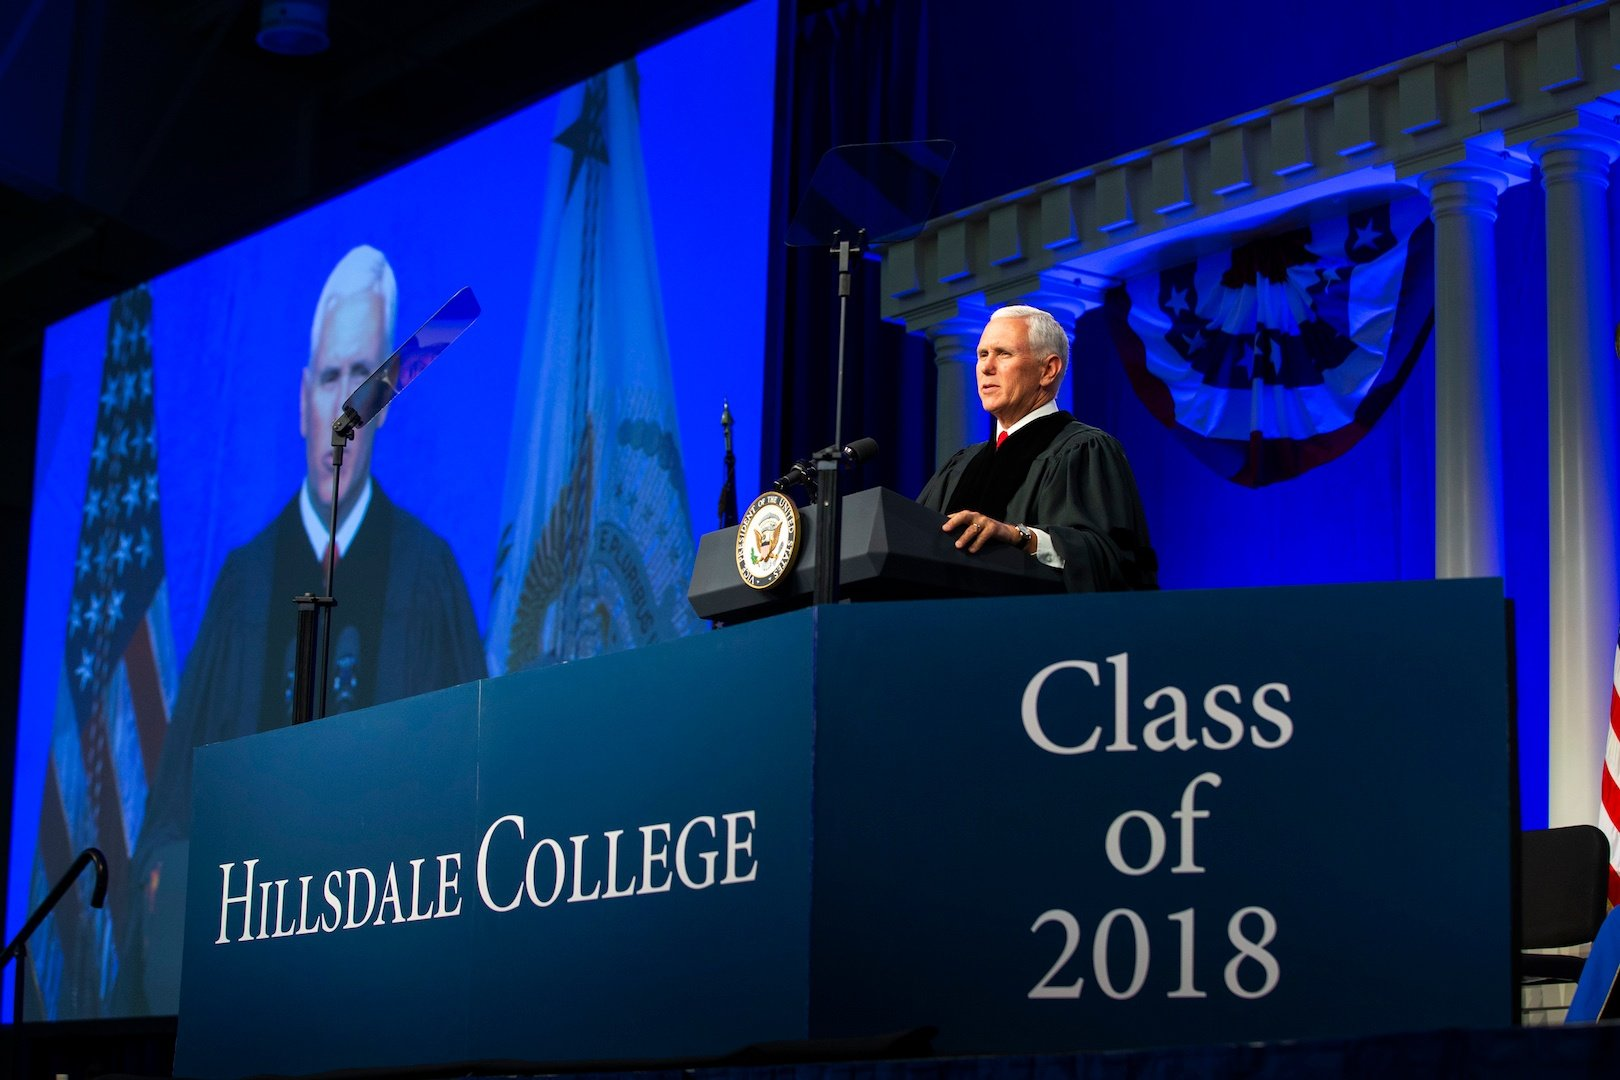 Mike Pence Delivers 2018 Commencement Address